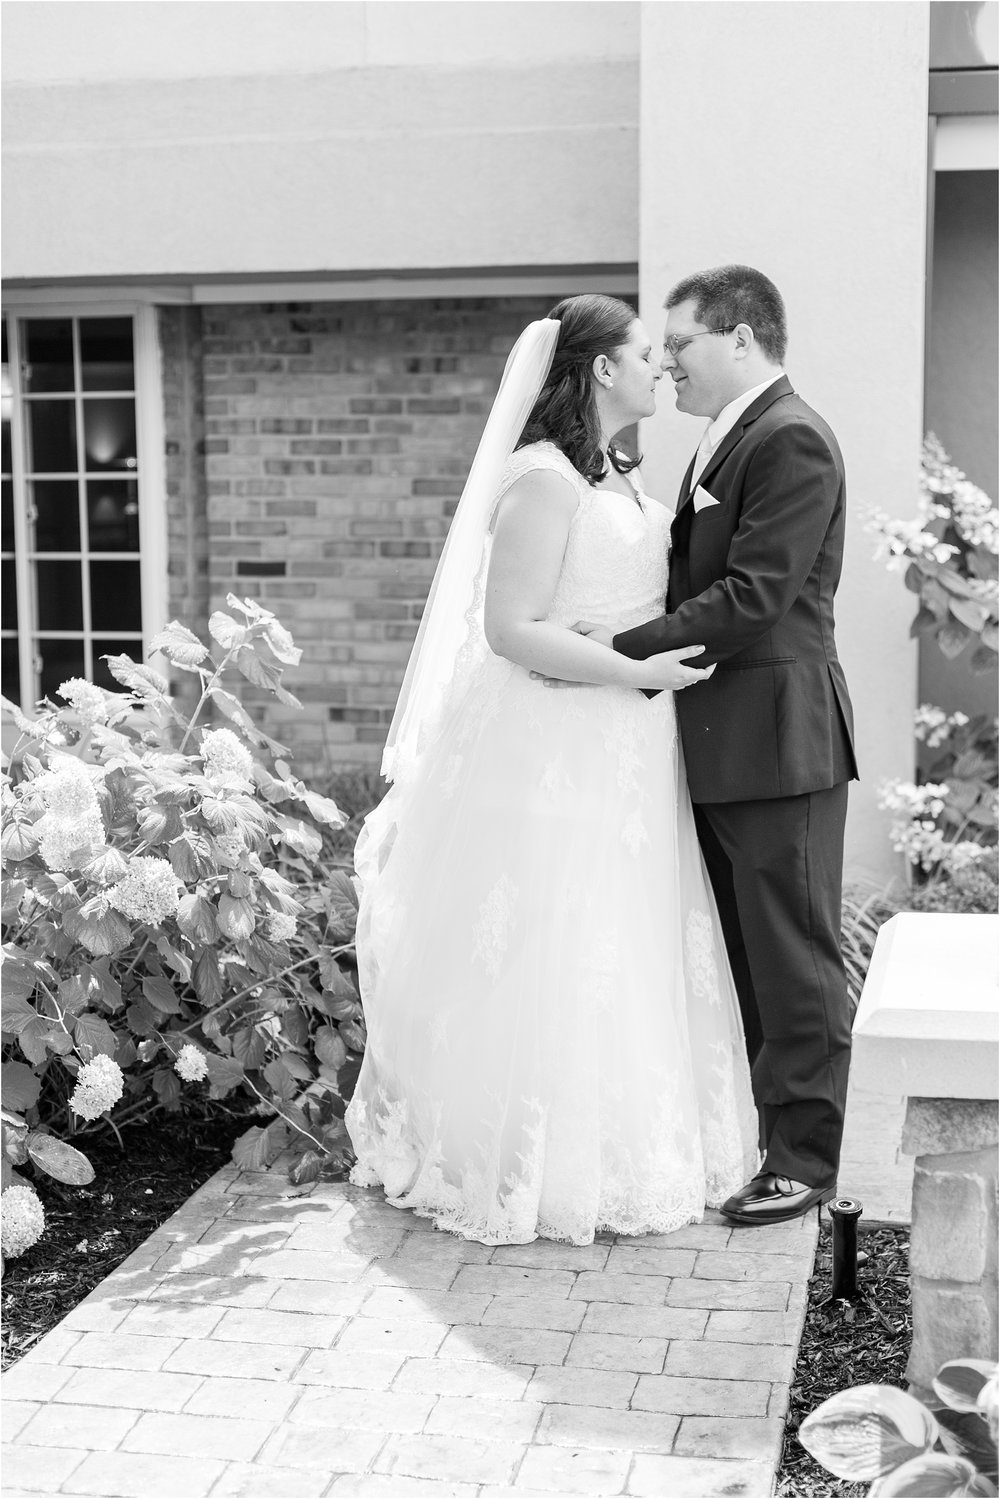 modern-and-elegant-wedding-photos-at-kensington-court-in-ann-arbor-mi-by-courtney-carolyn-photography_0068.jpg